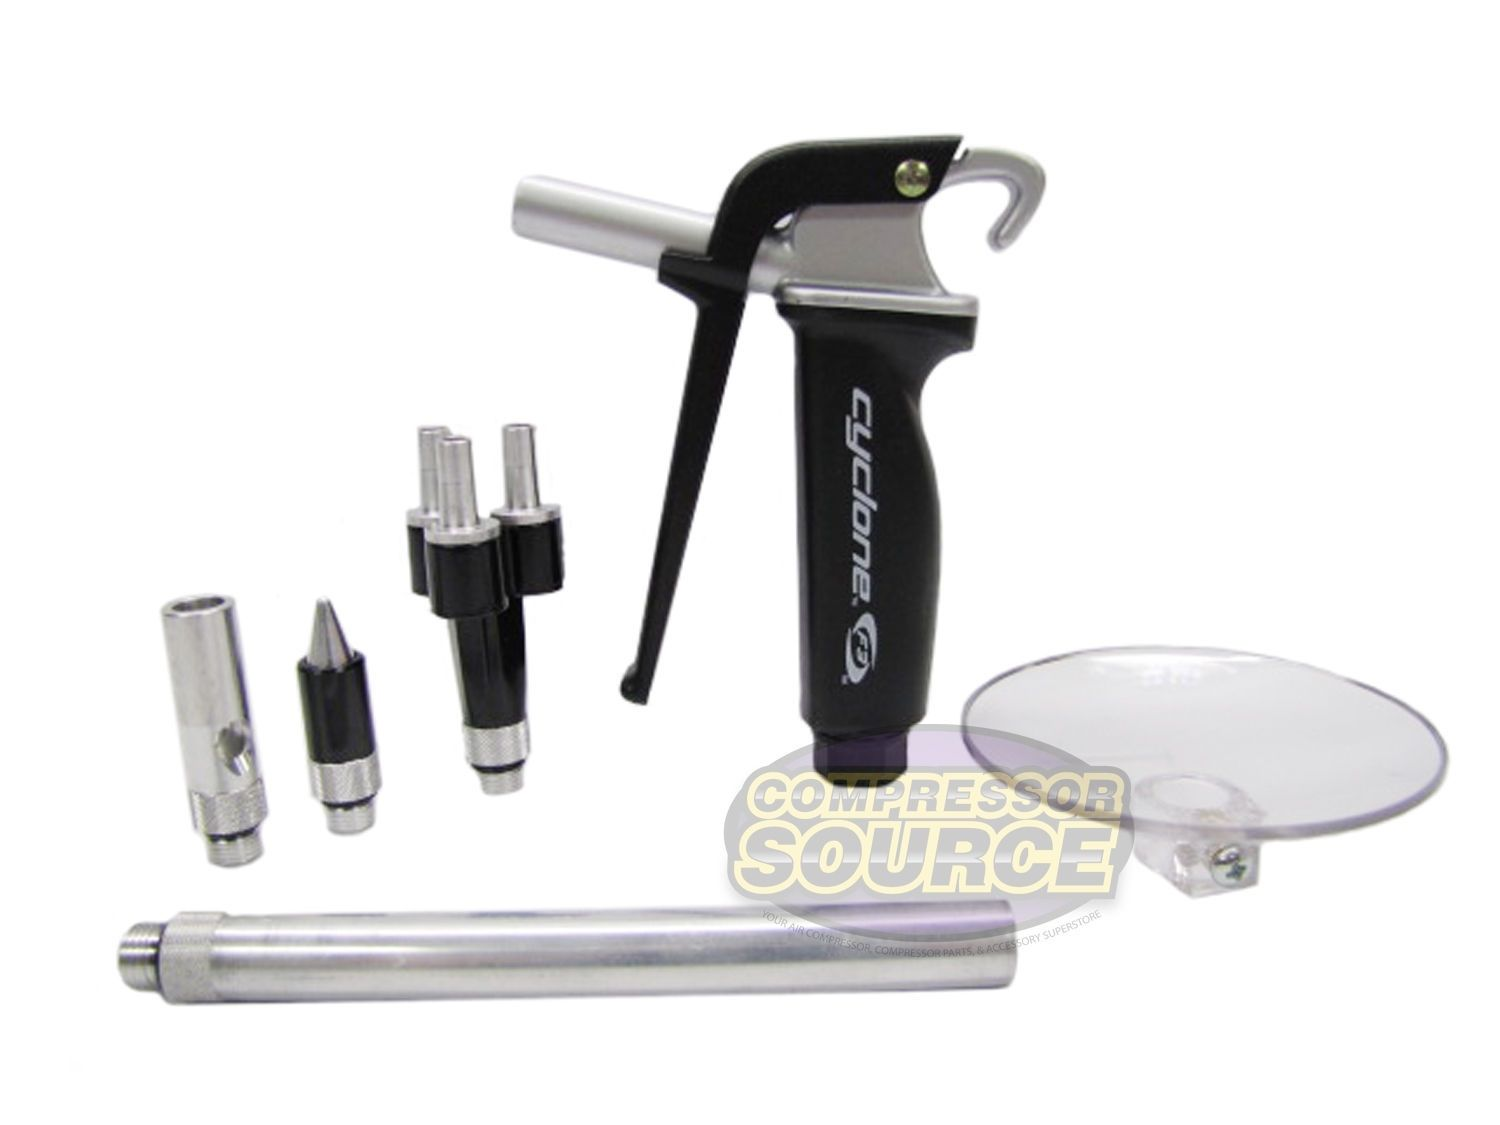 6 PIECE AIR BLOW GUN KIT WITH NOZZLES